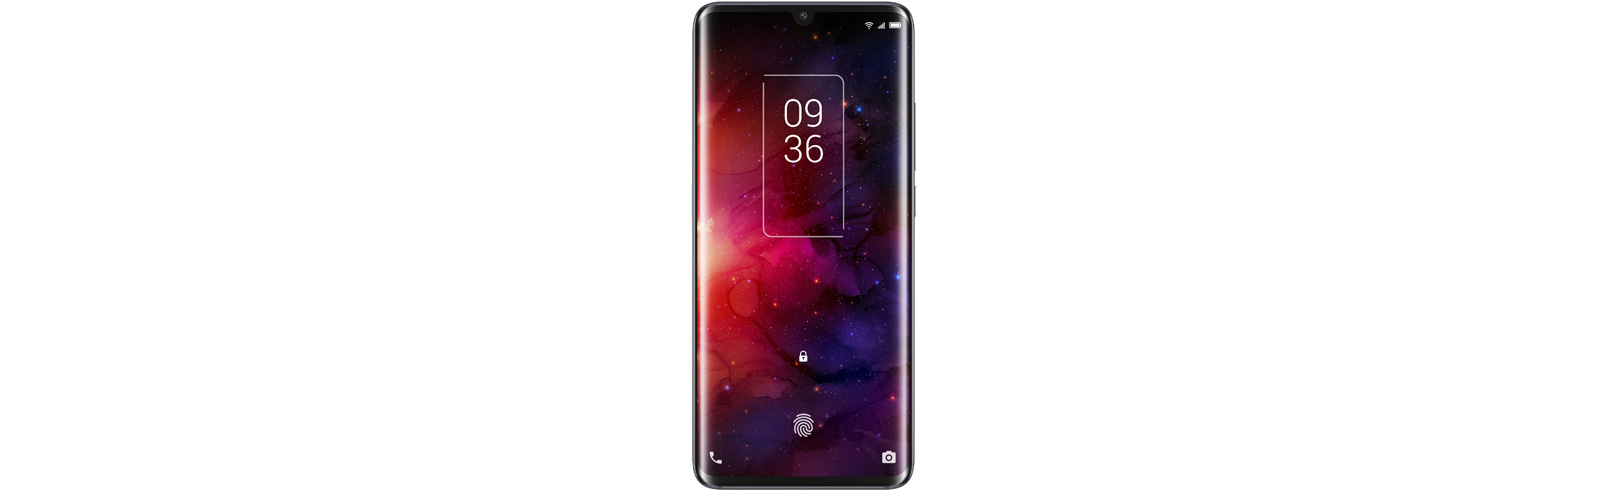 TCL 10 Pro and TCL 10L go on sale in Canada